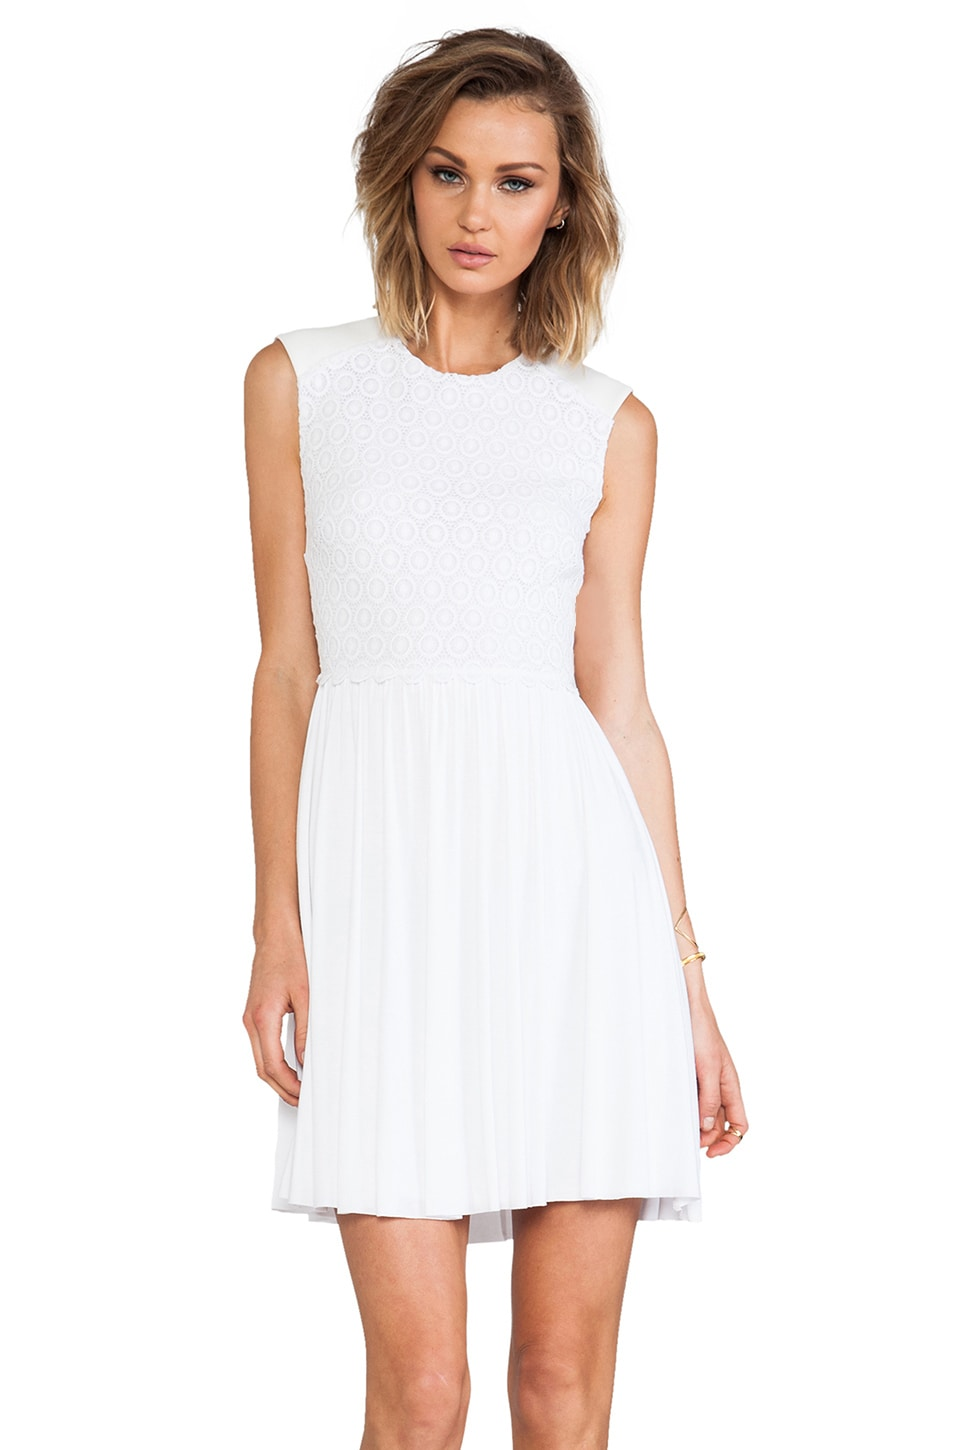 Bailey 44 Debbie Dress in White